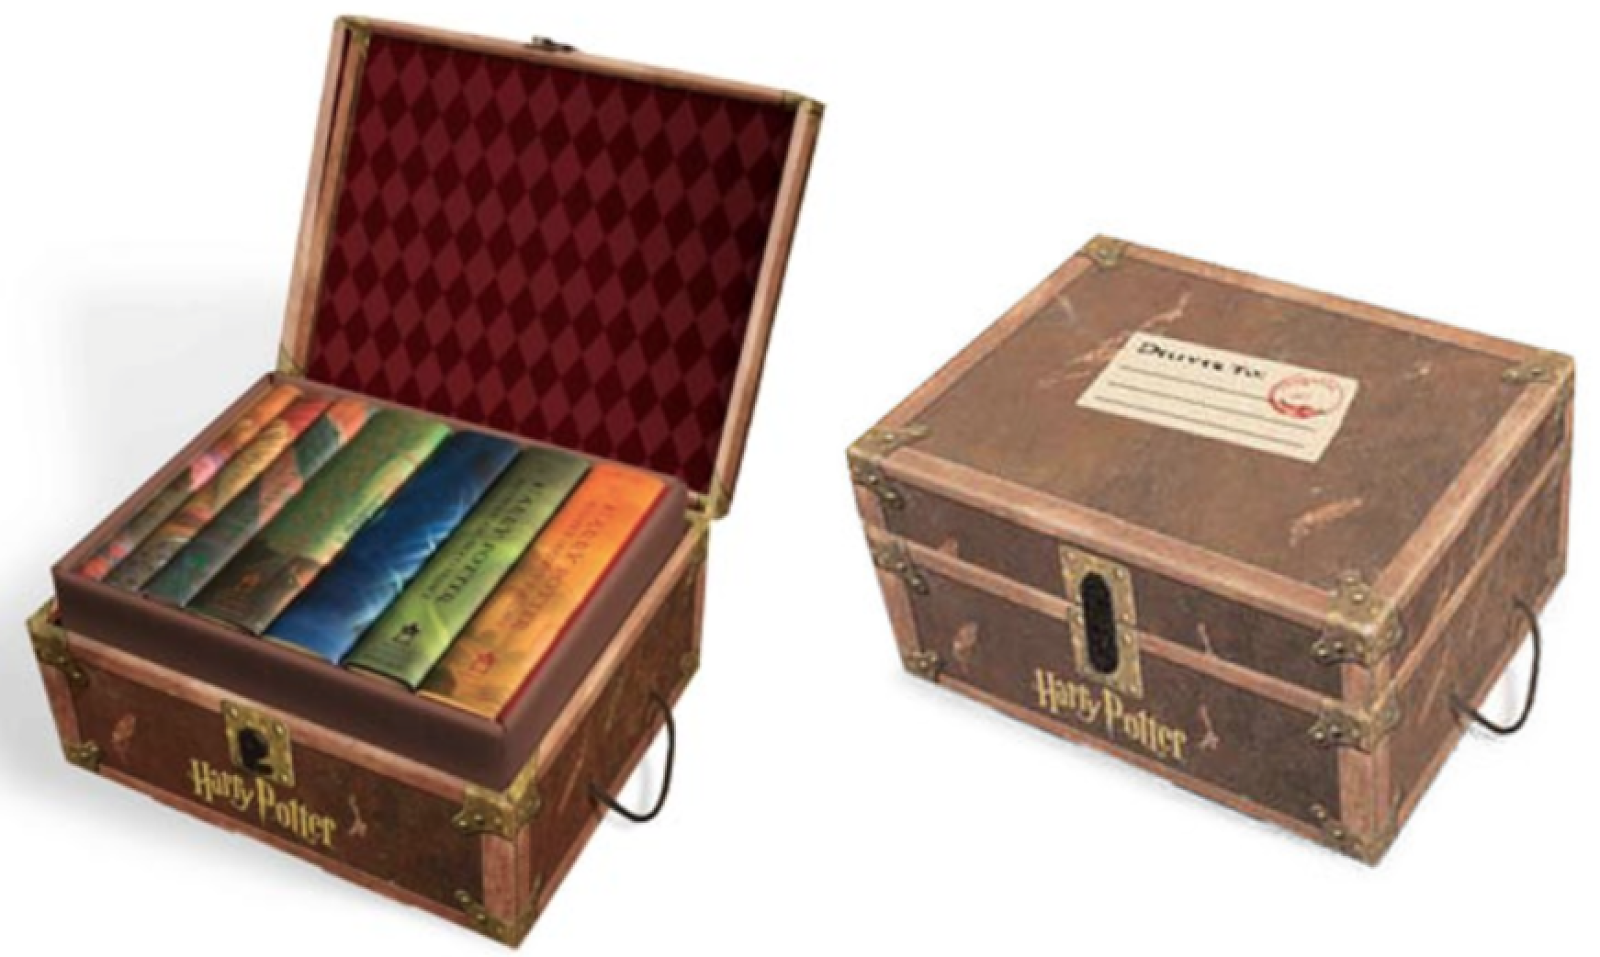 Harry Potter Book Hardcover Set ~ Someone figured out the exchange rate between harry potter